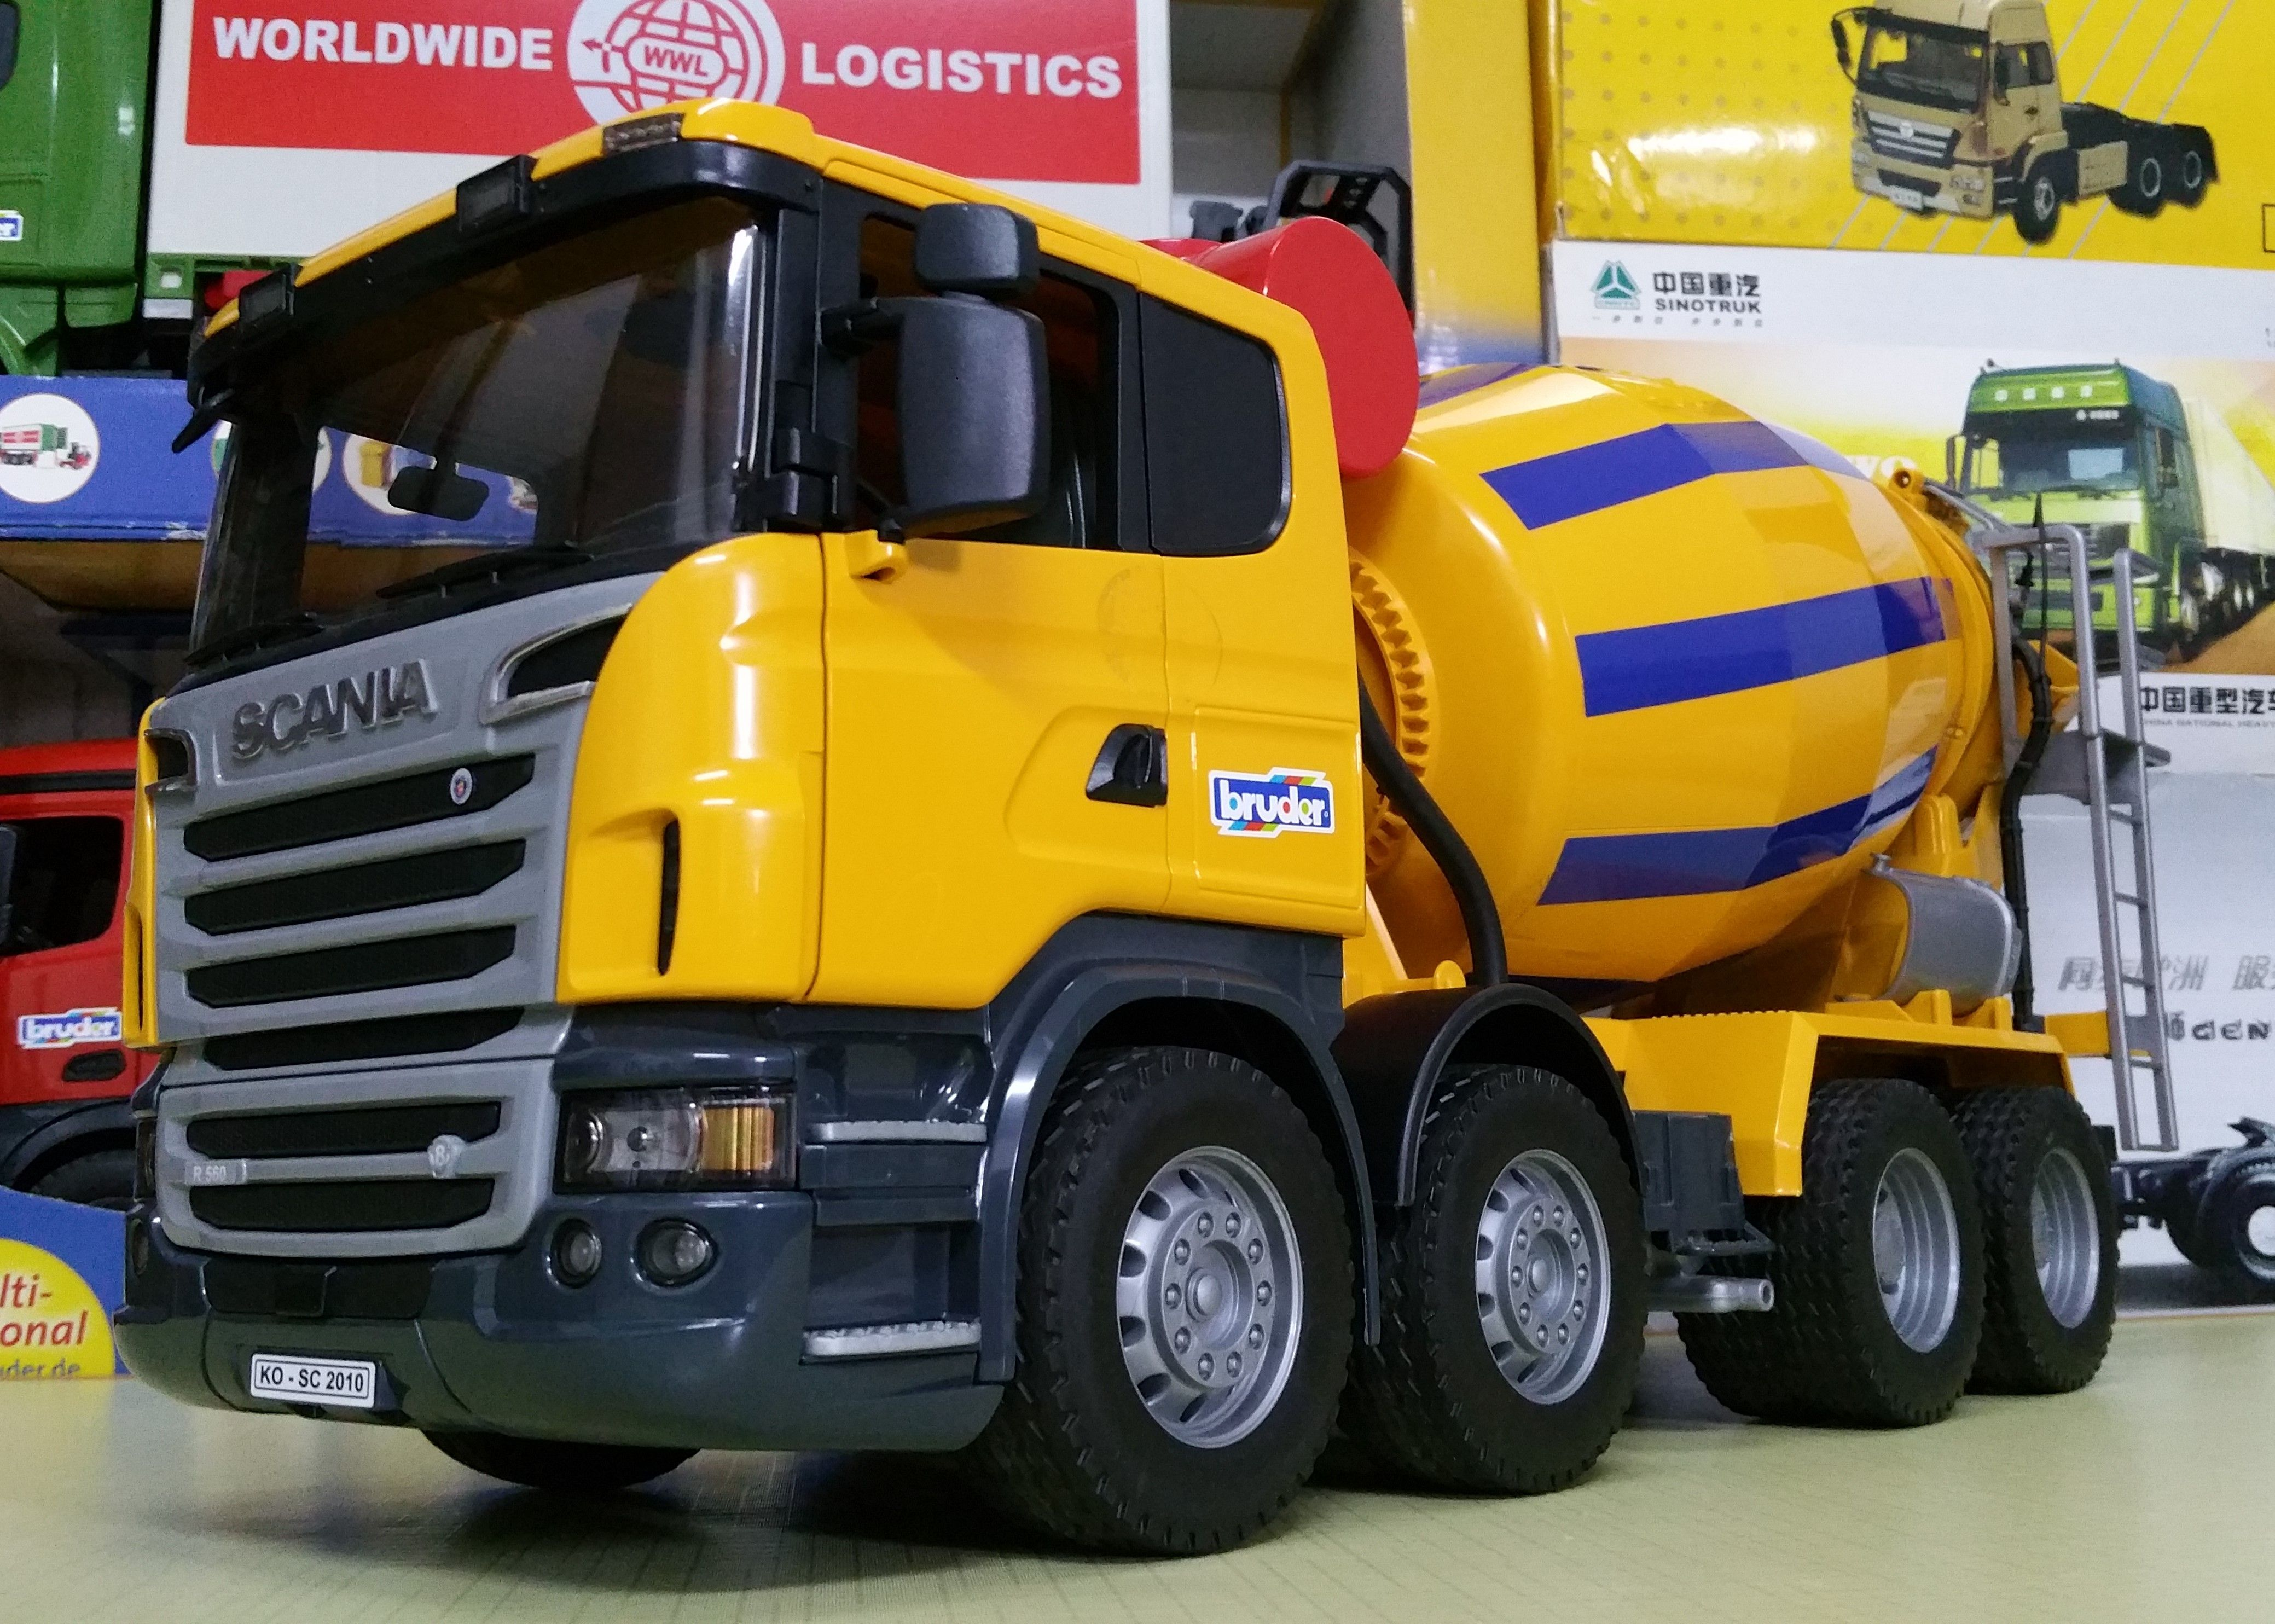 Bruder Scania R Series Cement Mixer Truck In 2020 Cement Mixer Truck Mixer Truck Trucks